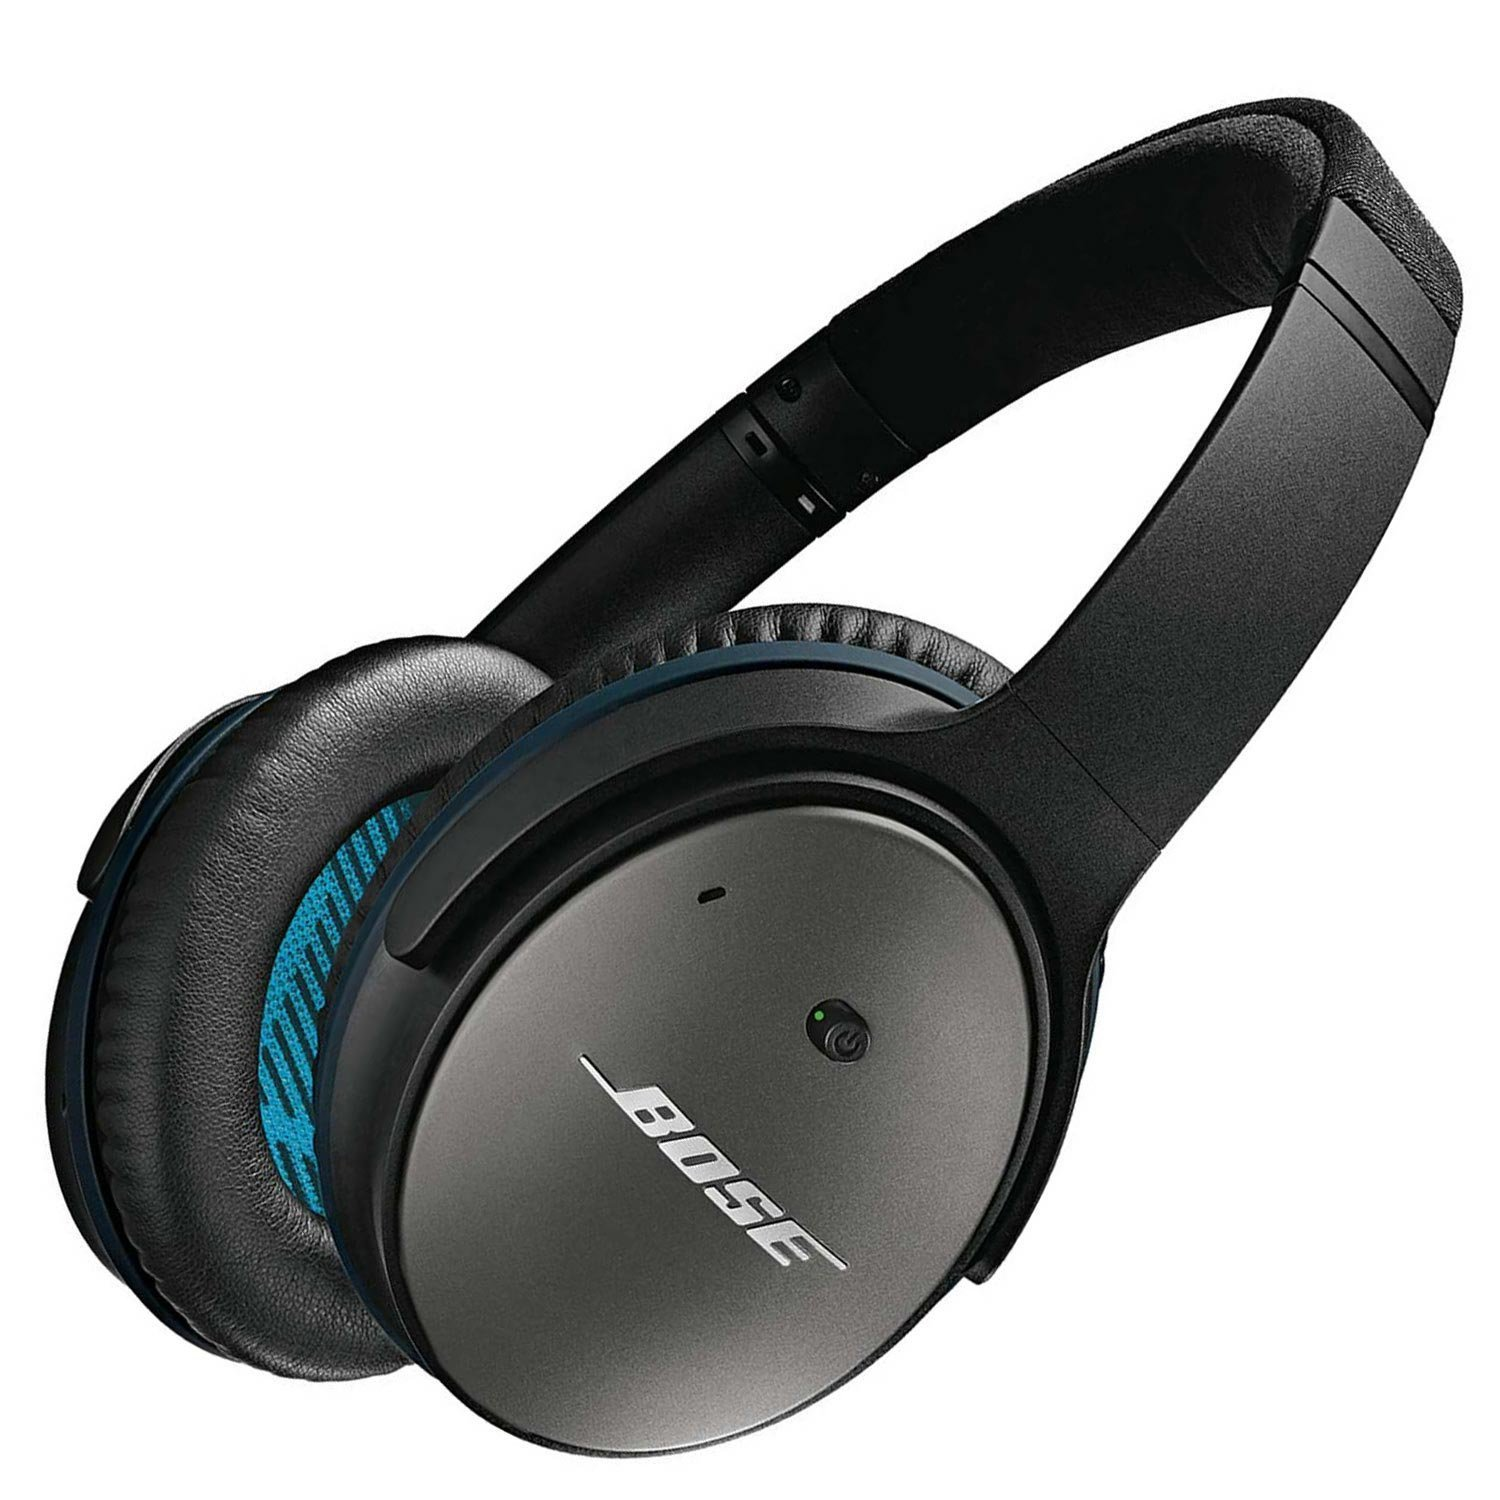 🔥 Black friday : le Bose QuietComfort 25 à 180 euros au lieu de 325